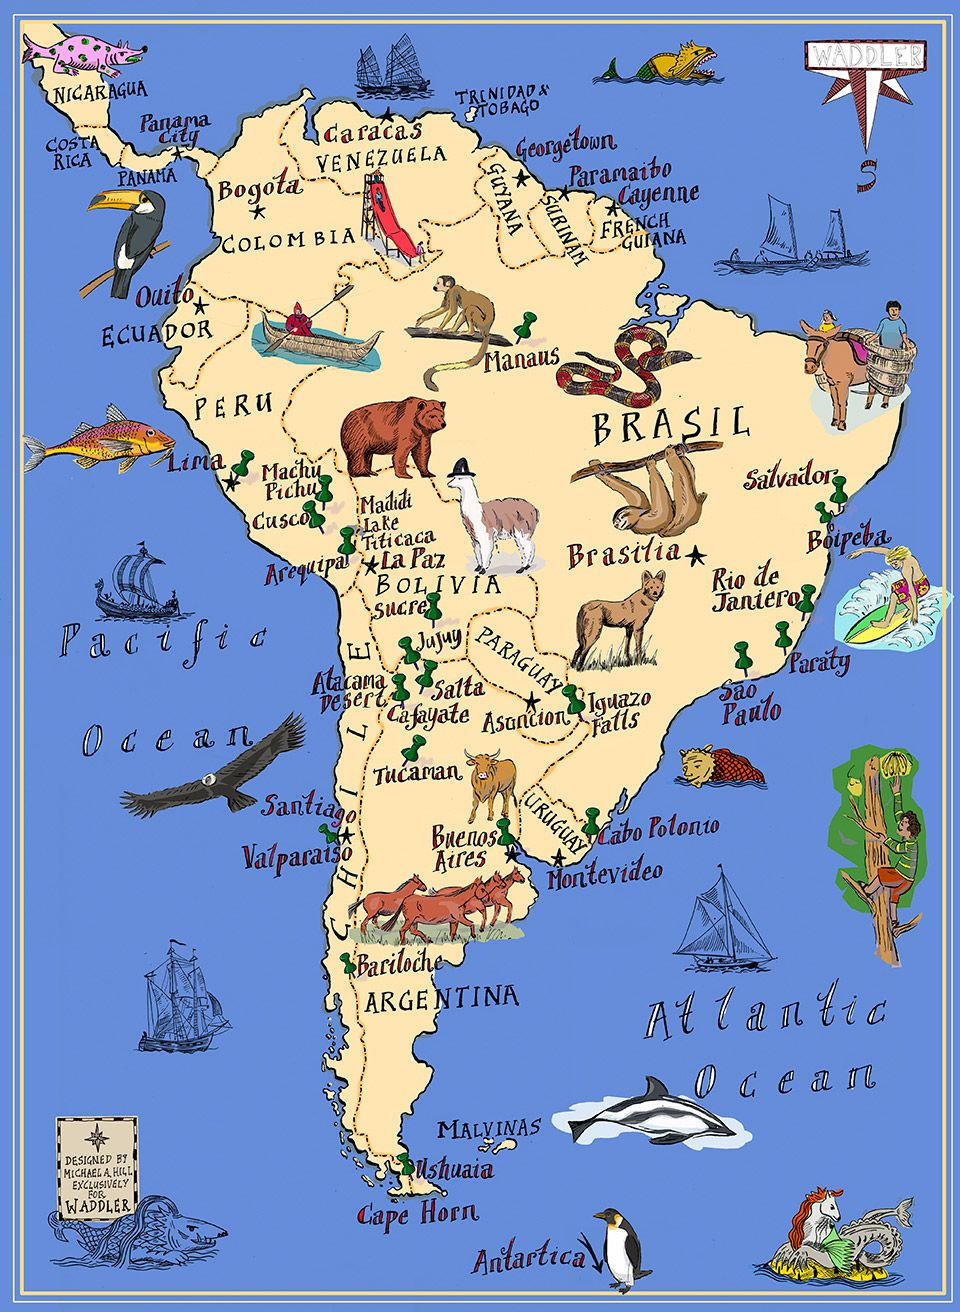 World Map Of Argentina.Michael A Hill Map Of South America Geografiya Pinterest